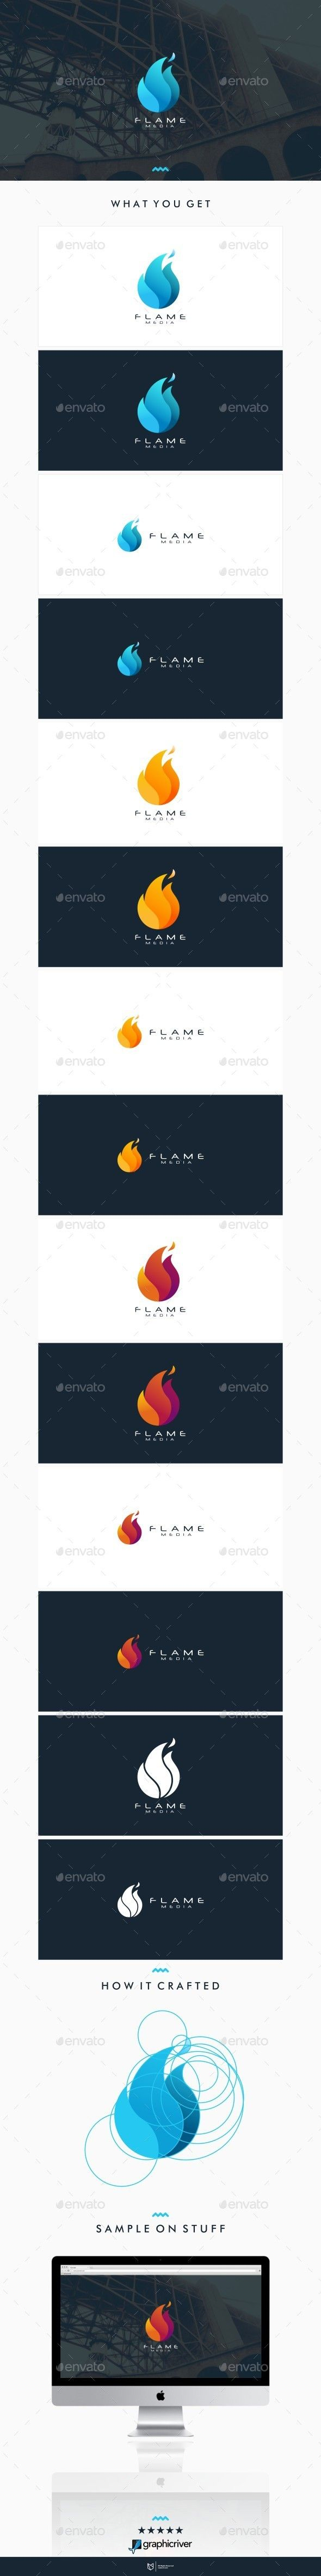 Flame Media Logo Template Vector EPS, AI. Download here: http://graphicriver.net/item/flame-media-logo/12959547?ref=ksioks